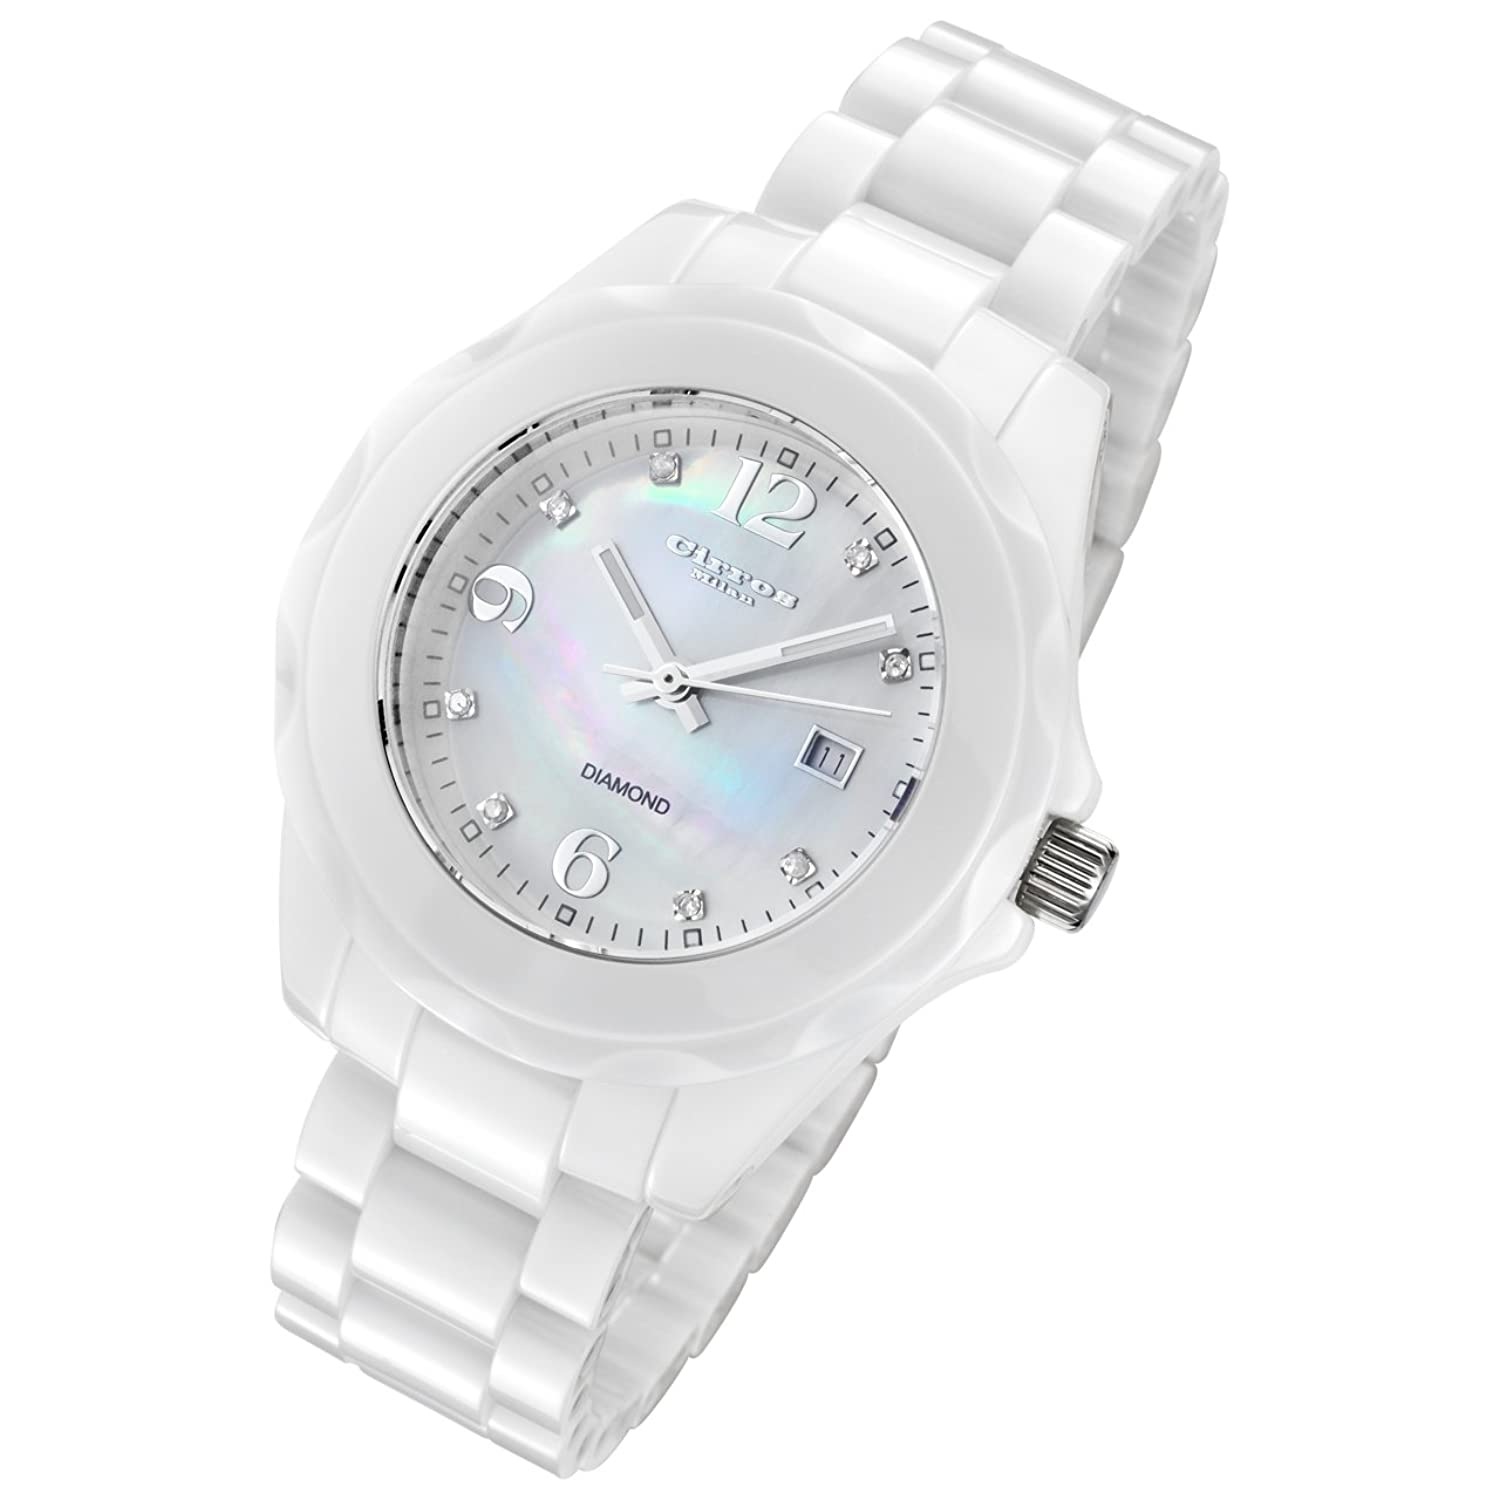 tissot watches ladies lady steel diamond from ceramic white image cera watch amp